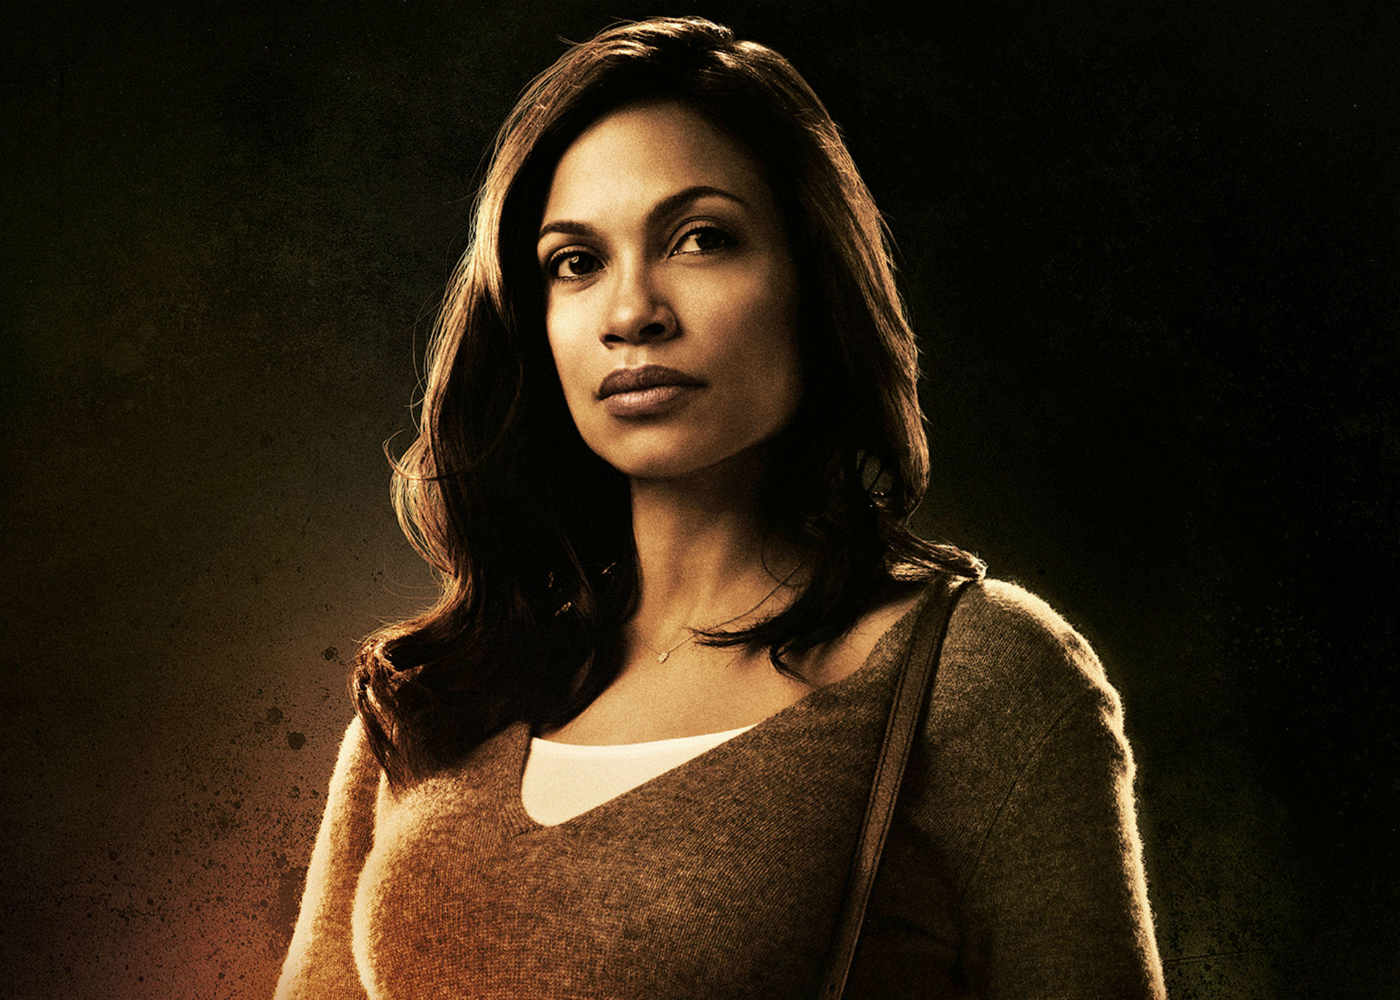 Rosario Dawson to Join the New Mutants, which will be a 'horror' movie